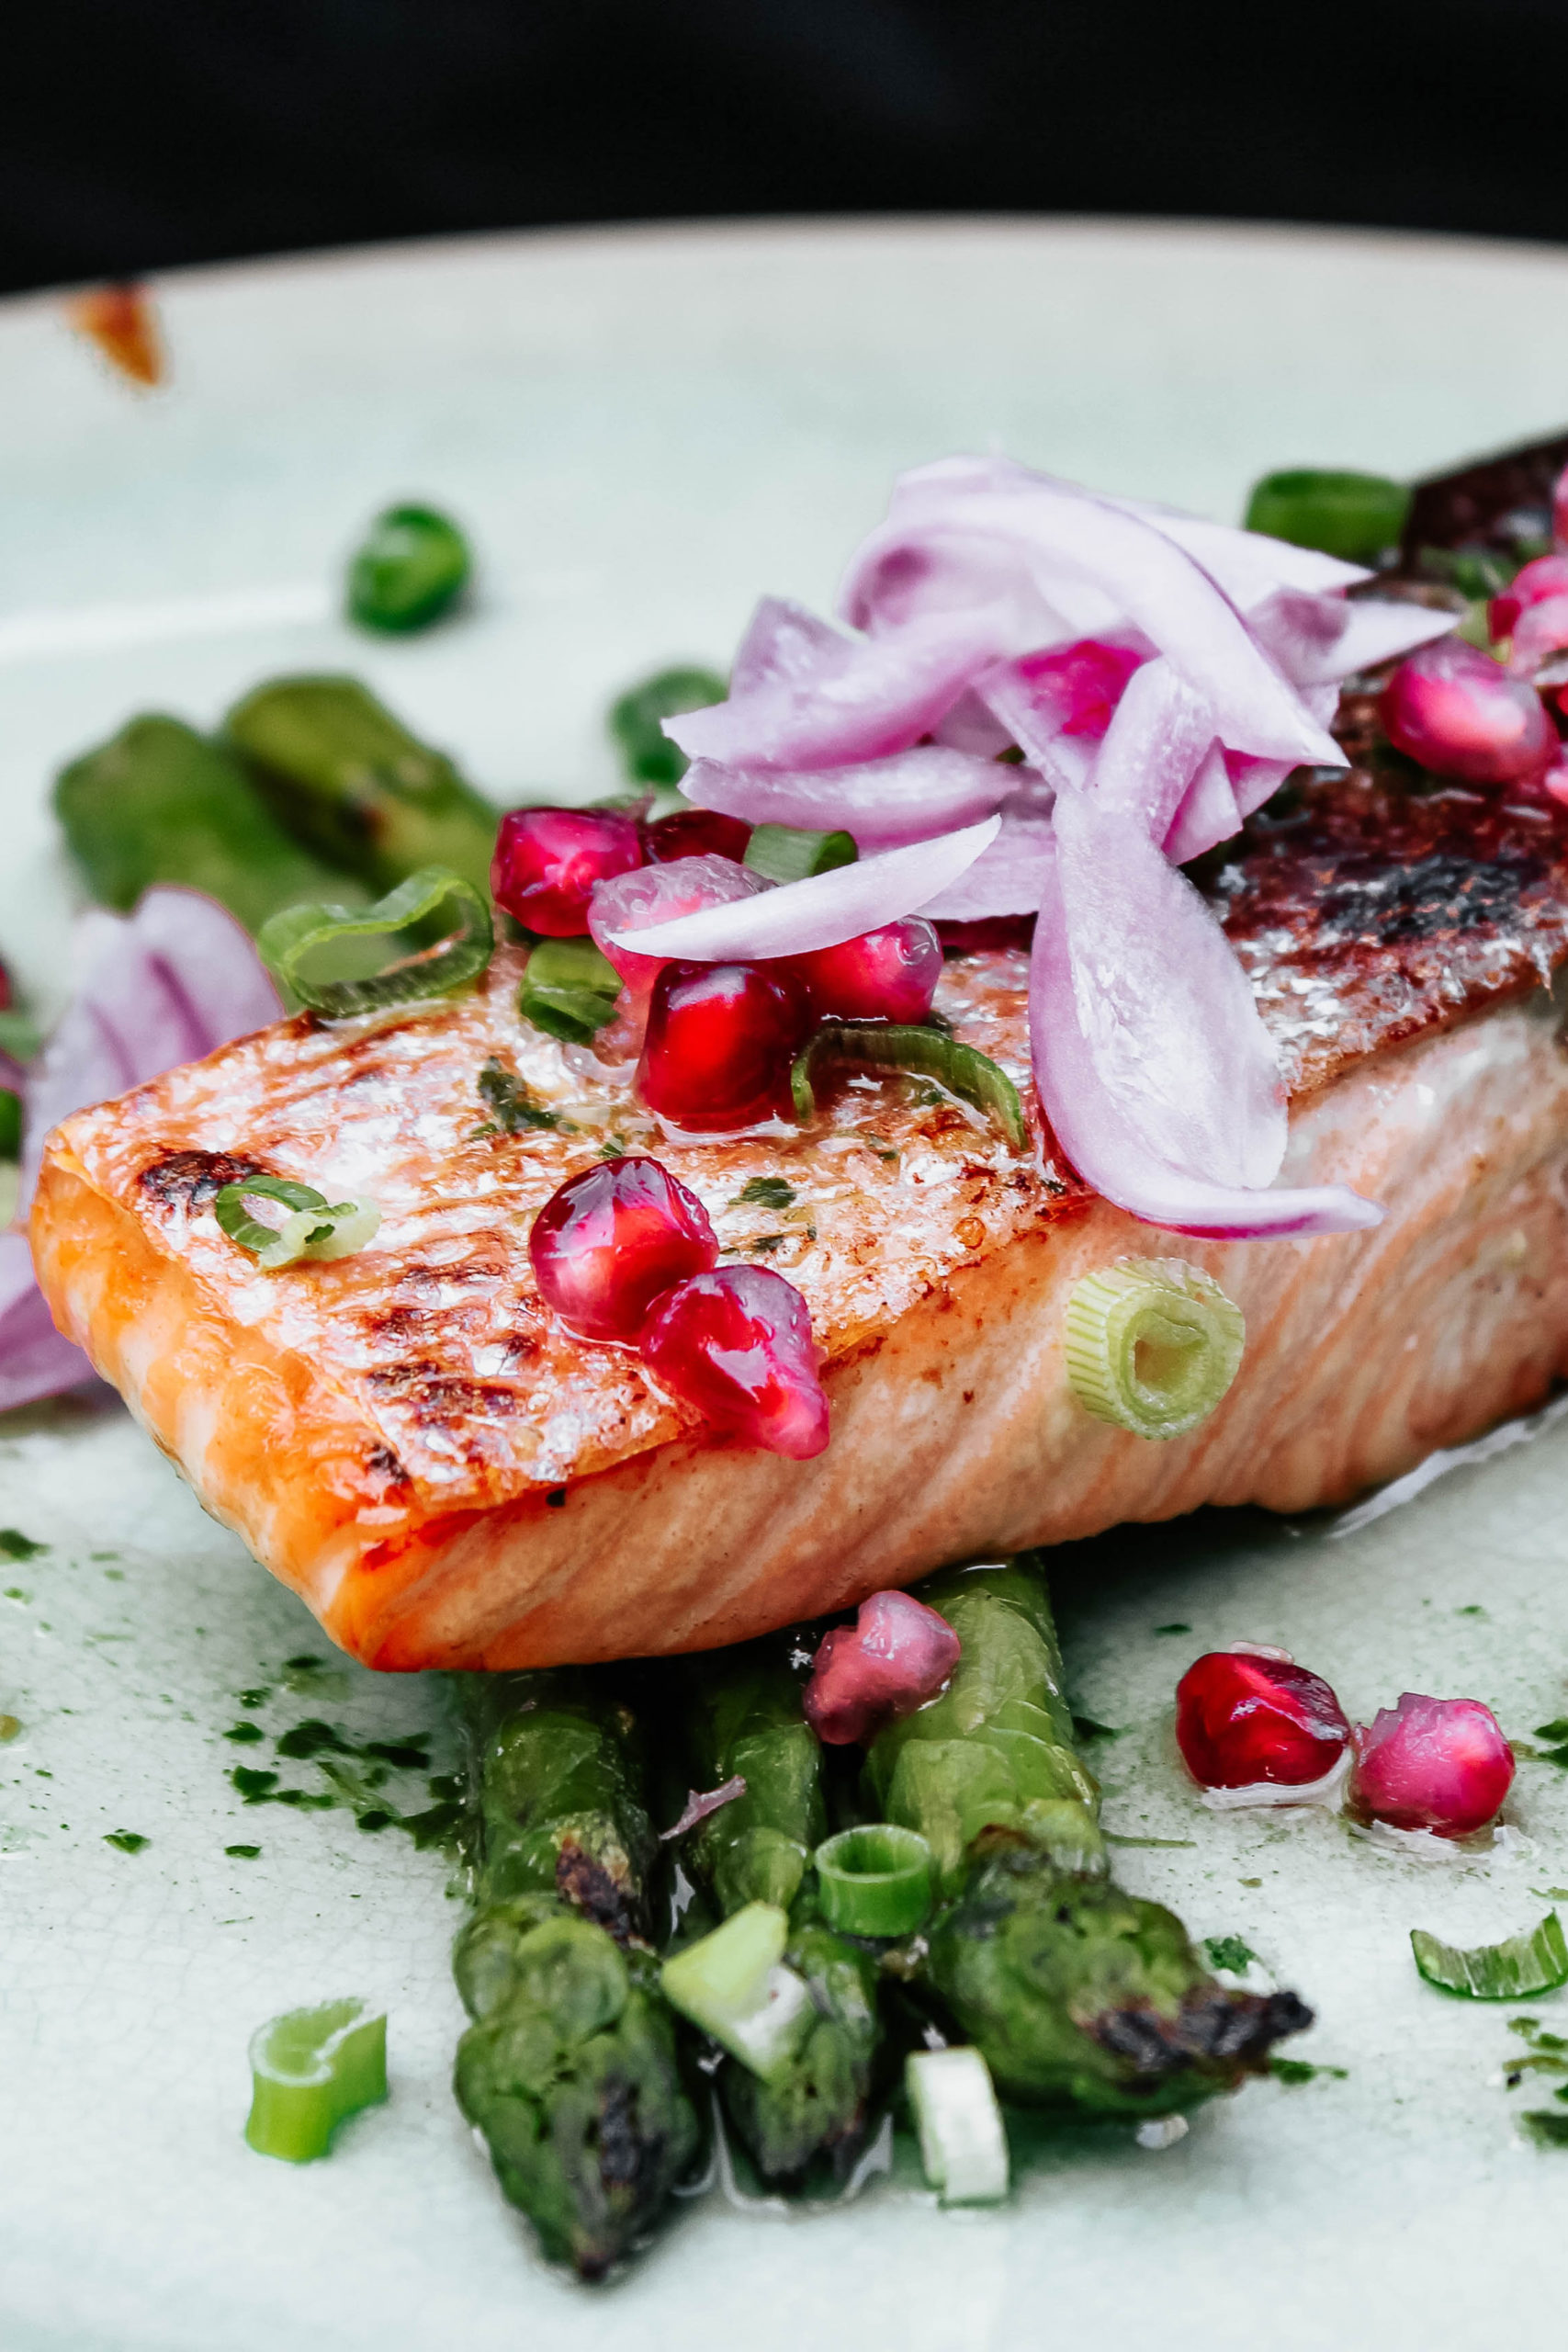 a piece of cooked salmon fillet on a bed of asparagus topped with chopped red onion and pomegranate seeds